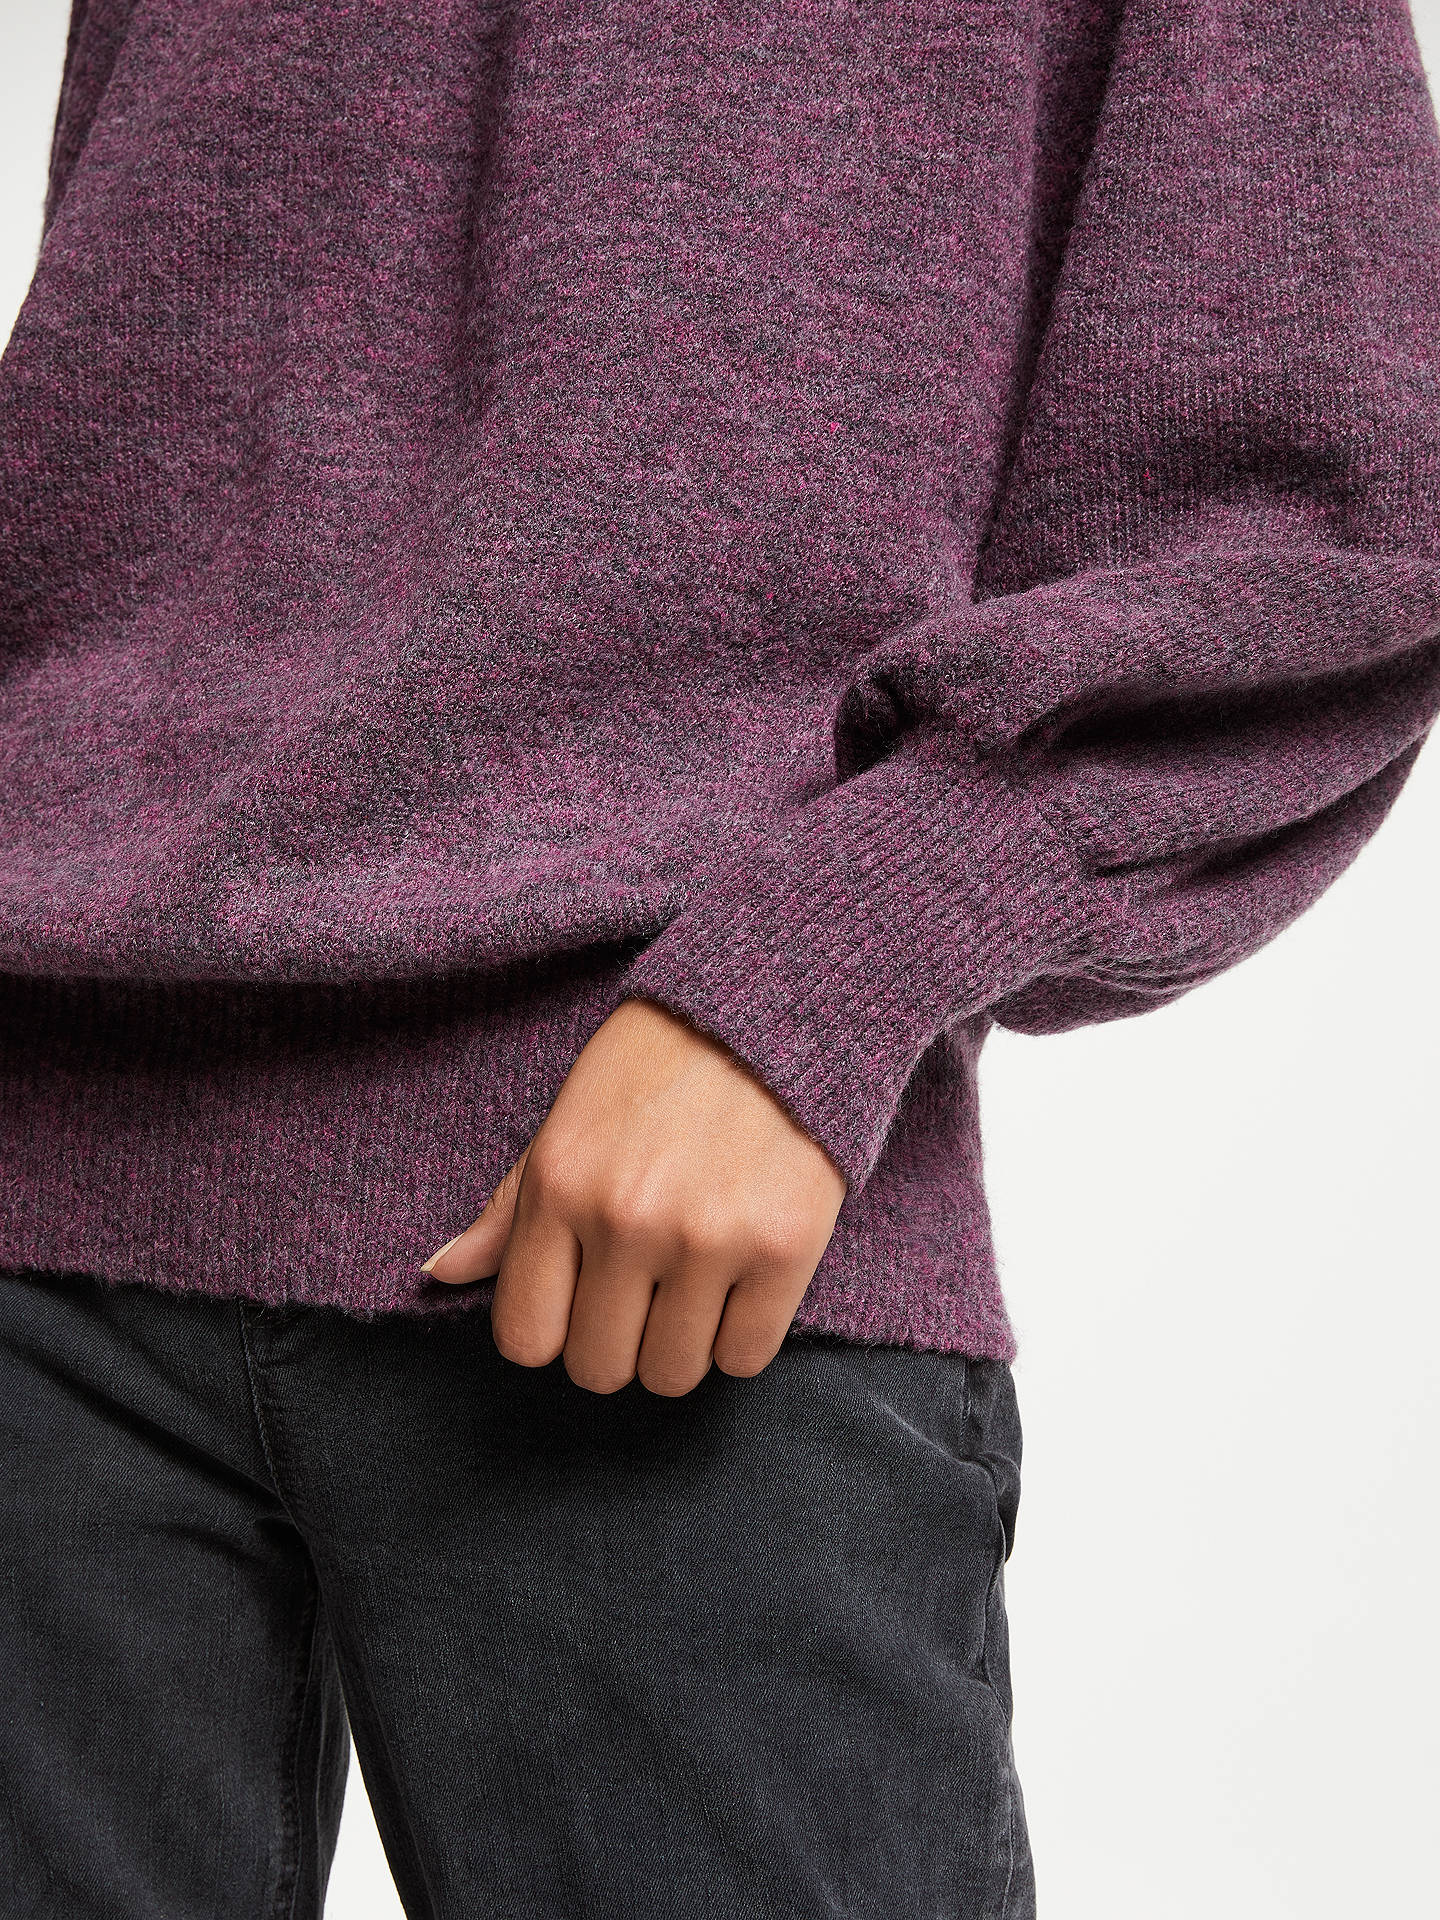 BuyAND/OR Mika High Neck Jumper, Purple, M Online at johnlewis.com